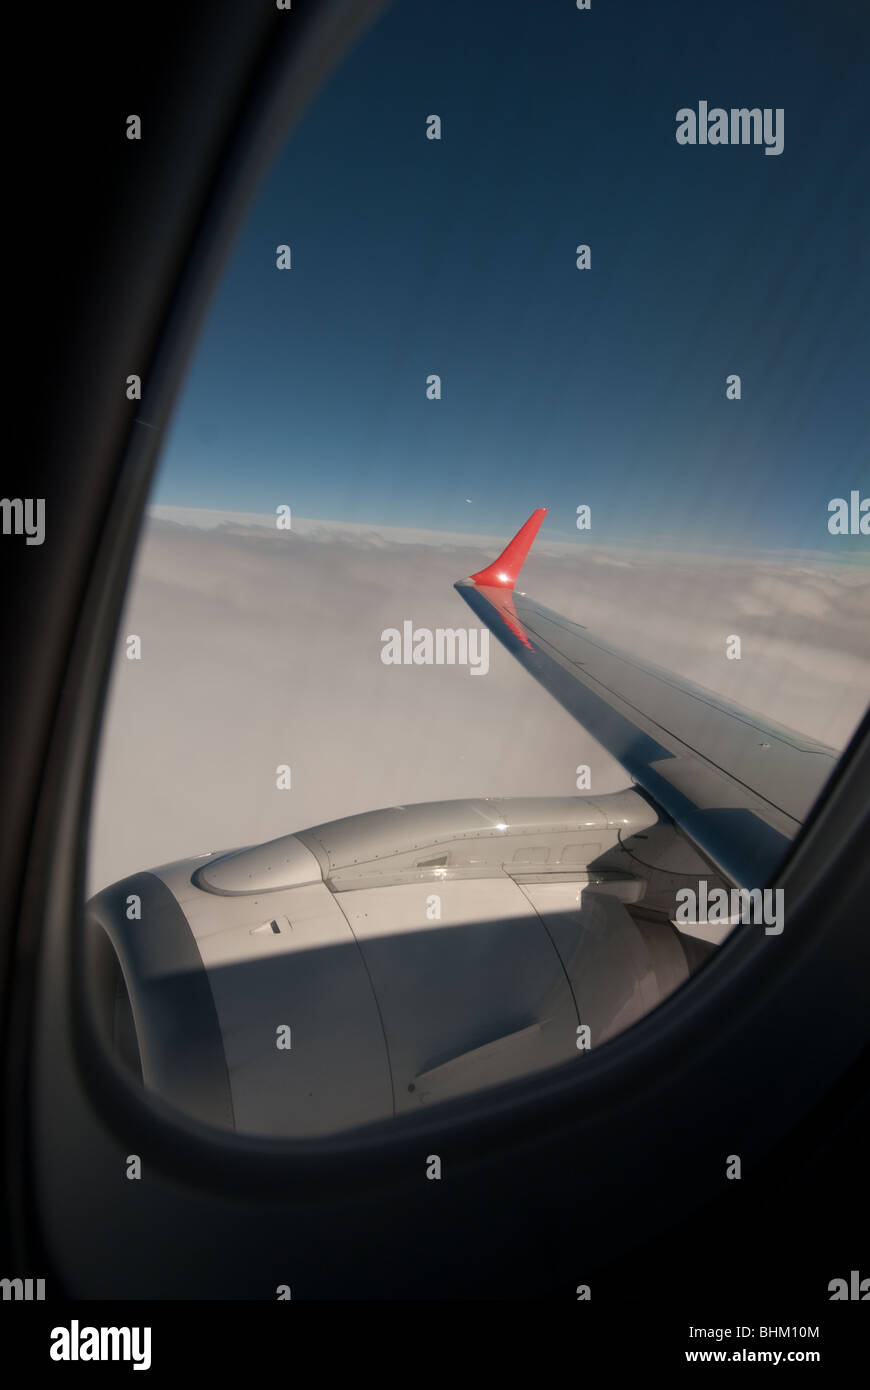 View over airoplane wing across the sky on a domestic passenger flight. - Stock Image